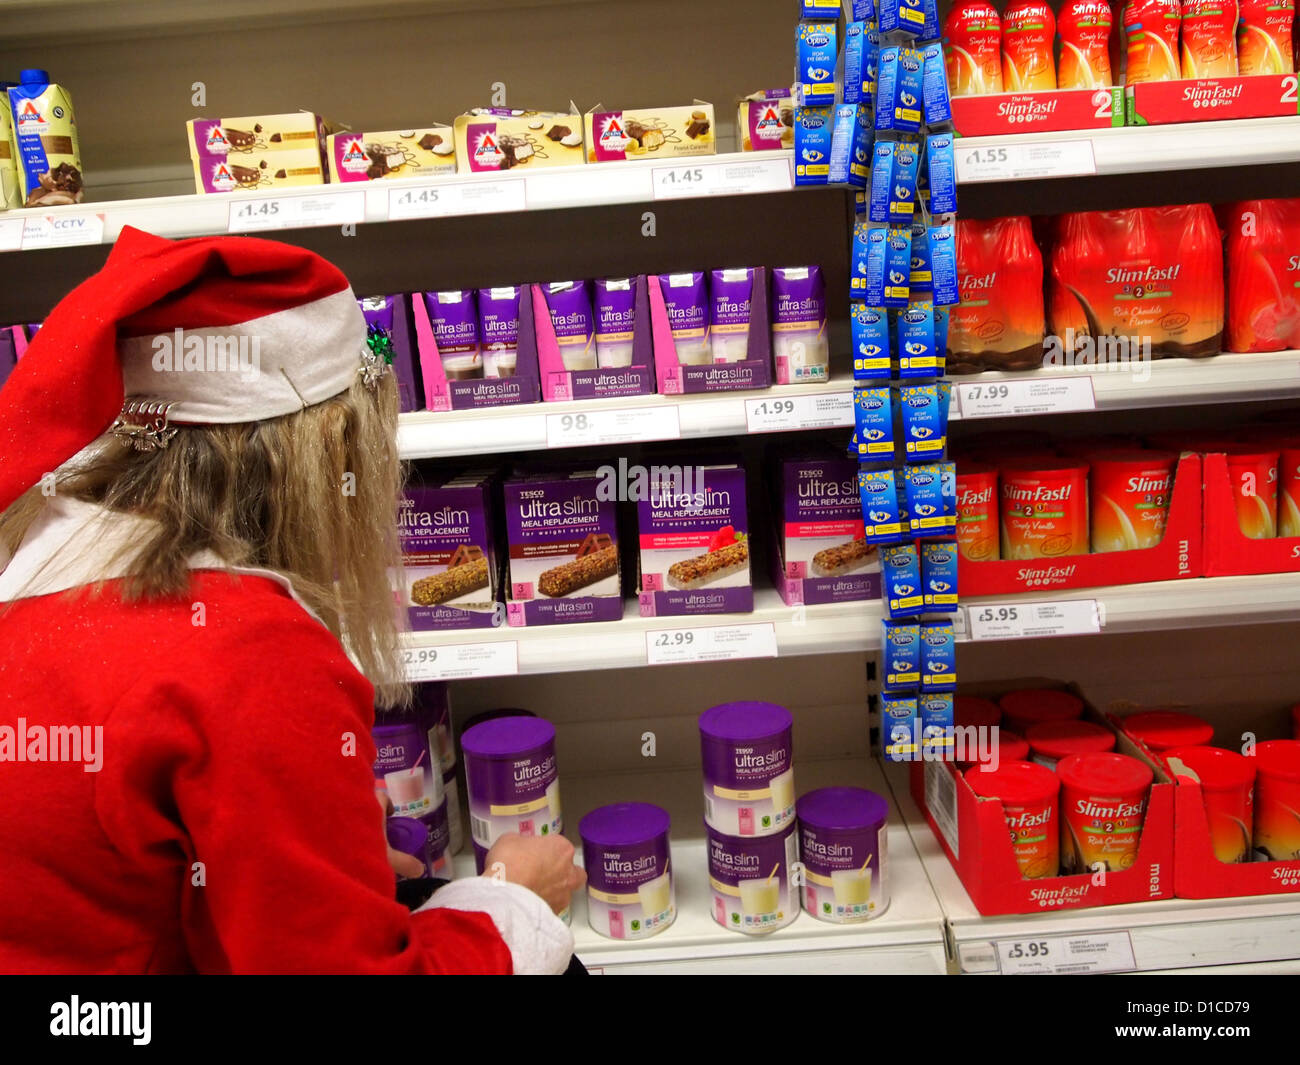 store assistant dressed as santa arranging the slimming foods on stock photo store assistant dressed as santa arranging the slimming foods on the shelves 2012